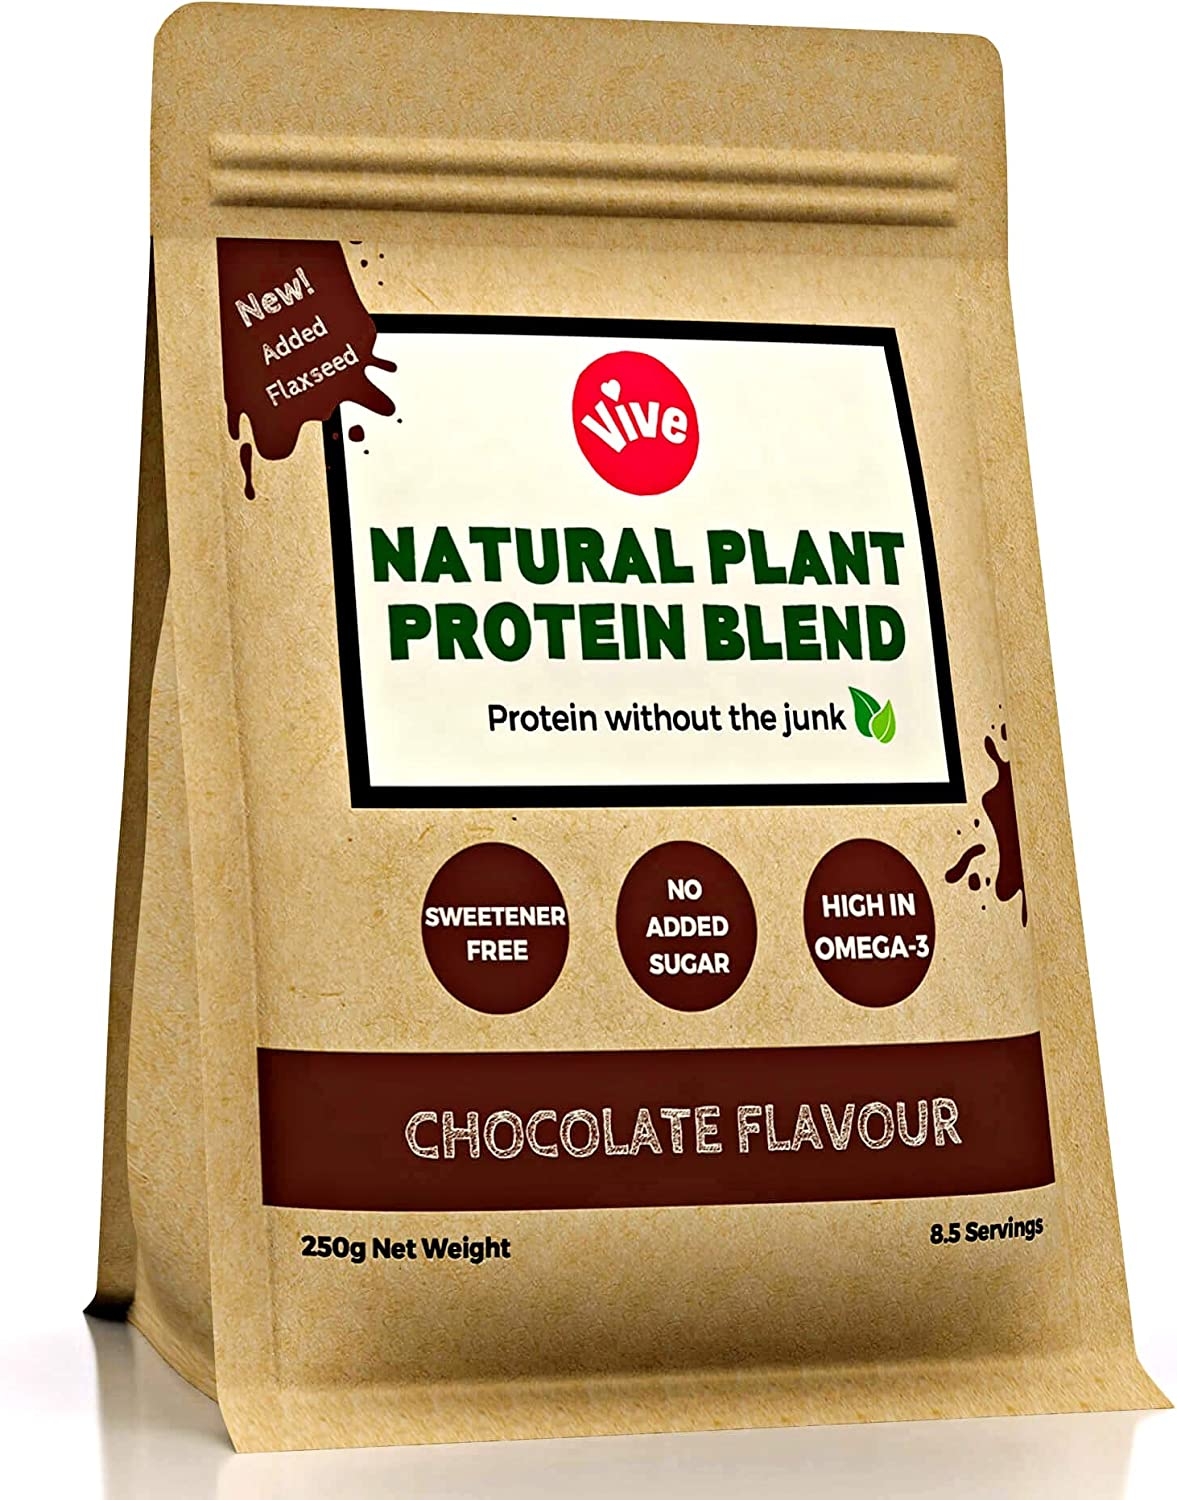 Vive Vegan Protein Powder Blend, Chocolate Flavour | Sweetener-Free Rice & Pea Protein (250g)